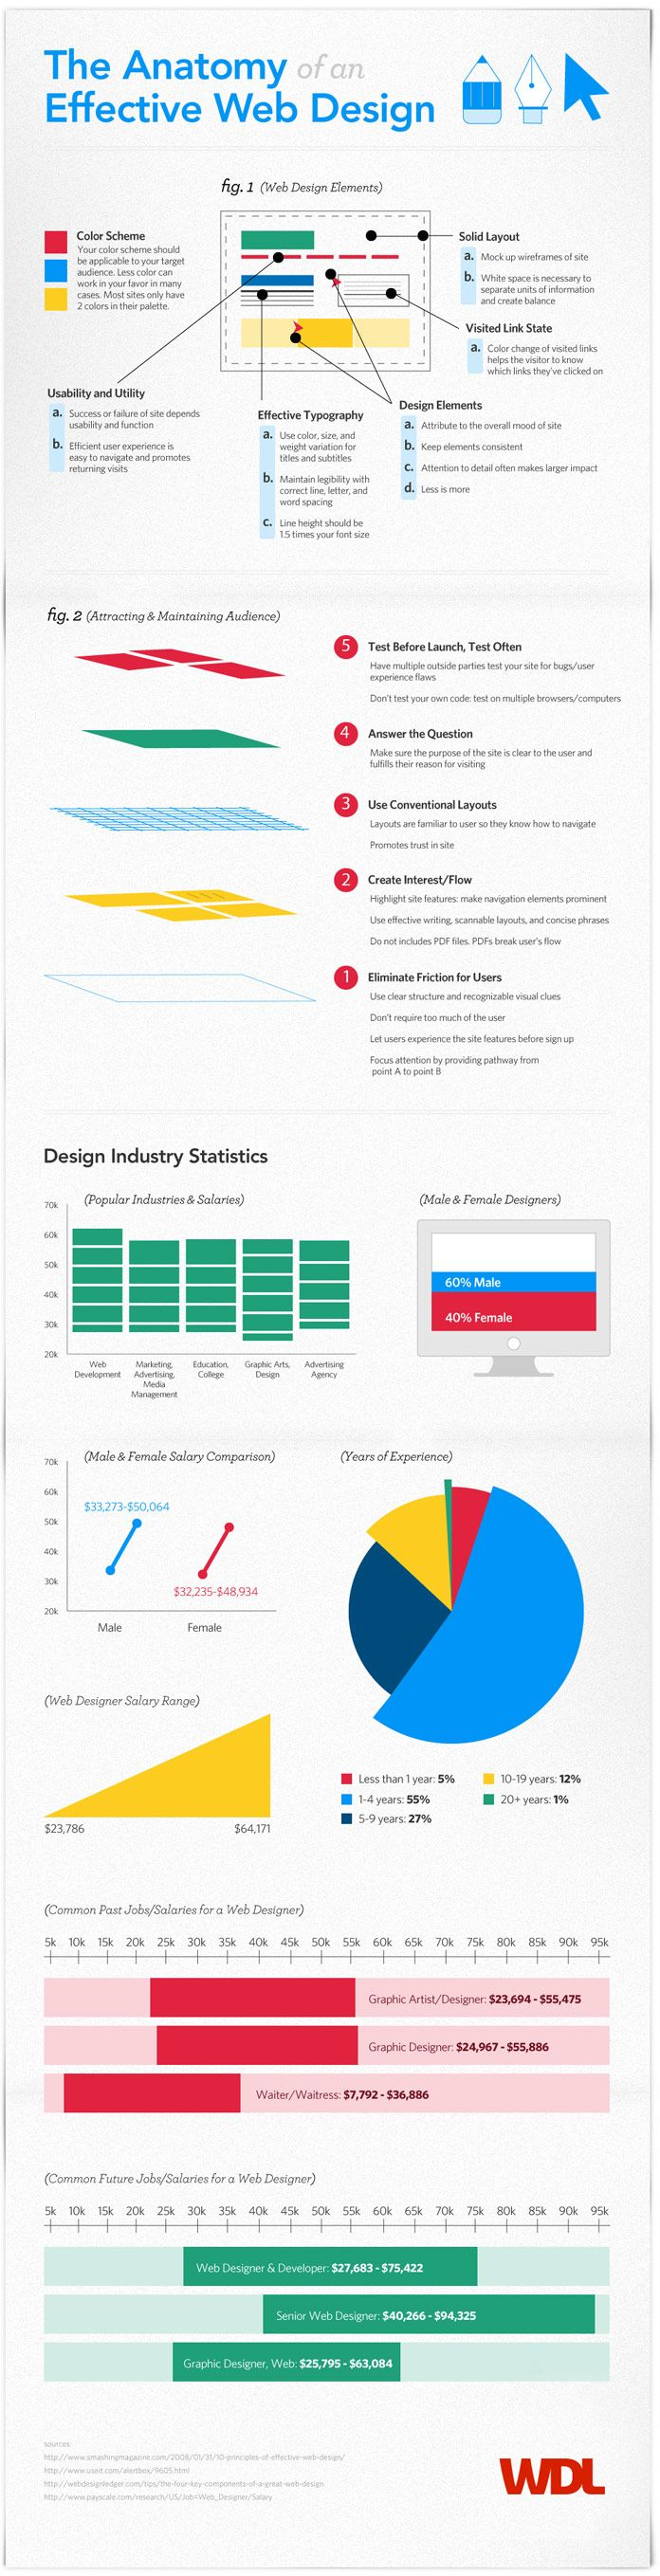 The Anatomy of an Effective Web Design #Infographic A web design is made up of various components, all working together to accomplish a goal – whether it be building a community or selling a product.